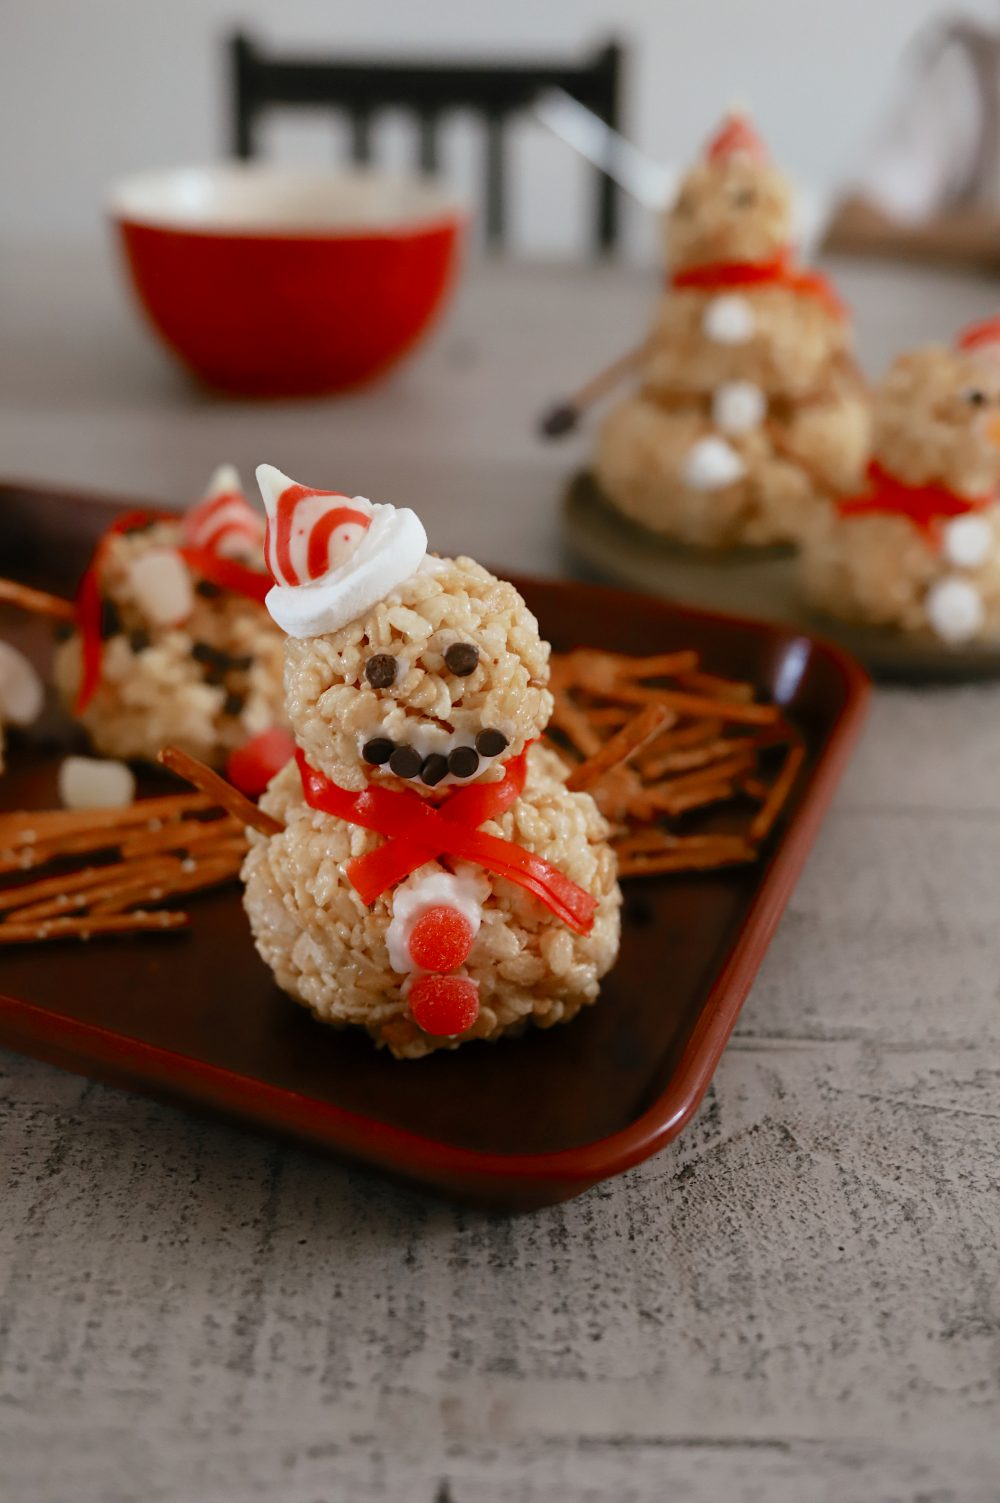 How to Make a Festive Rice Krispies Snowman Christmas Activity from mom and lifestyle blogger Tabitha Blue of Fresh Mommy Blog